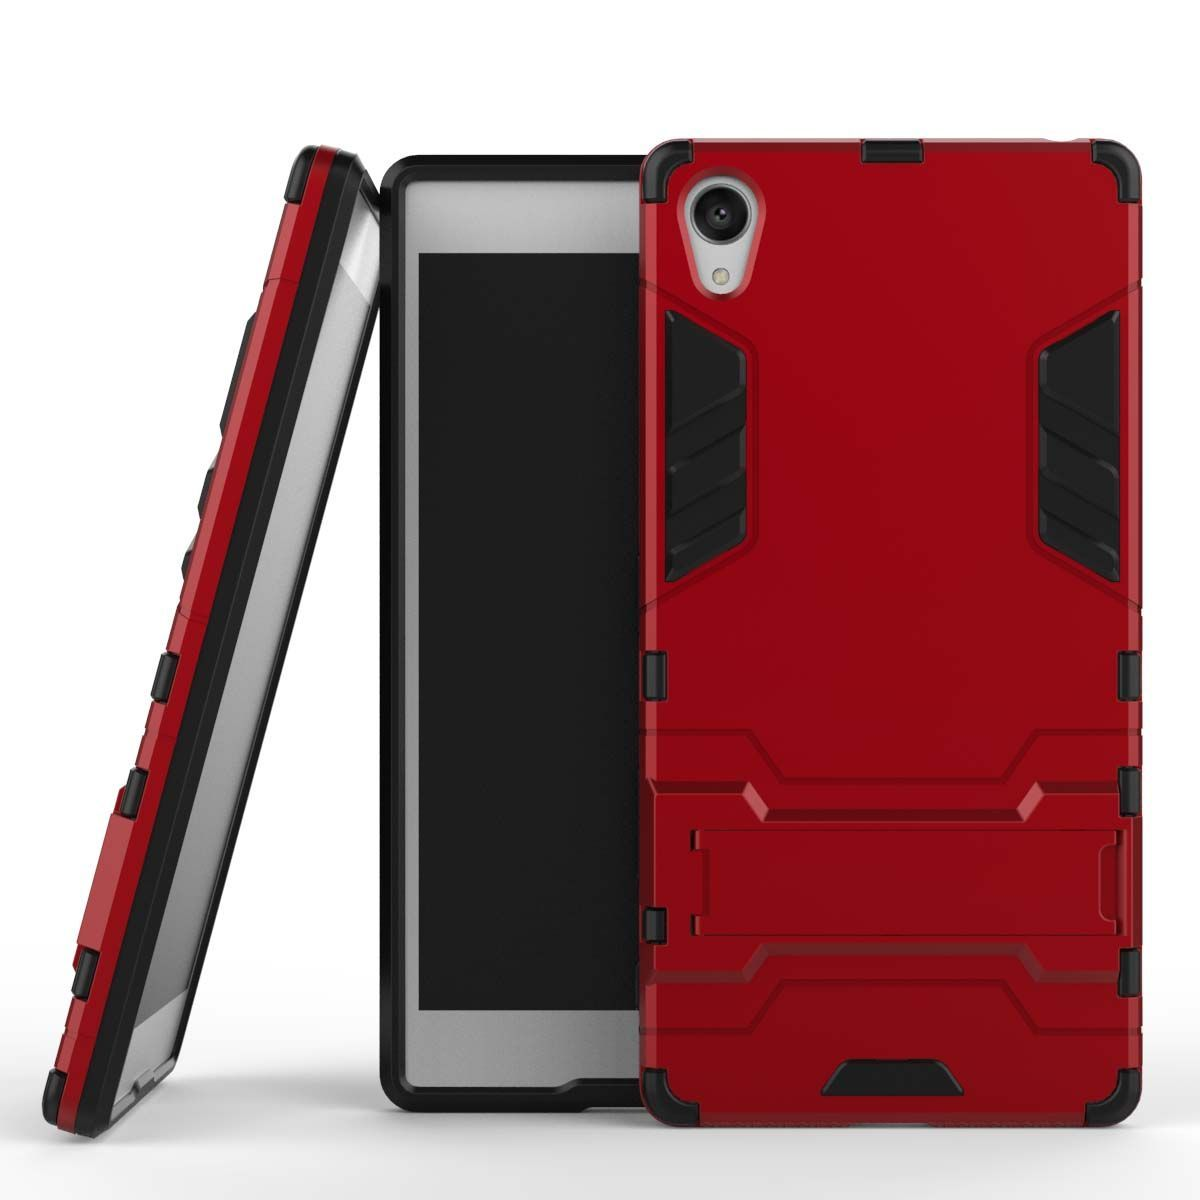 Sony Xperia Z5 Premium Case Iron Man Armor Strong High Tech And Indescribably Awesome That S Iron Iron Man Phone Case Sony Xperia Superhero Phone Cases